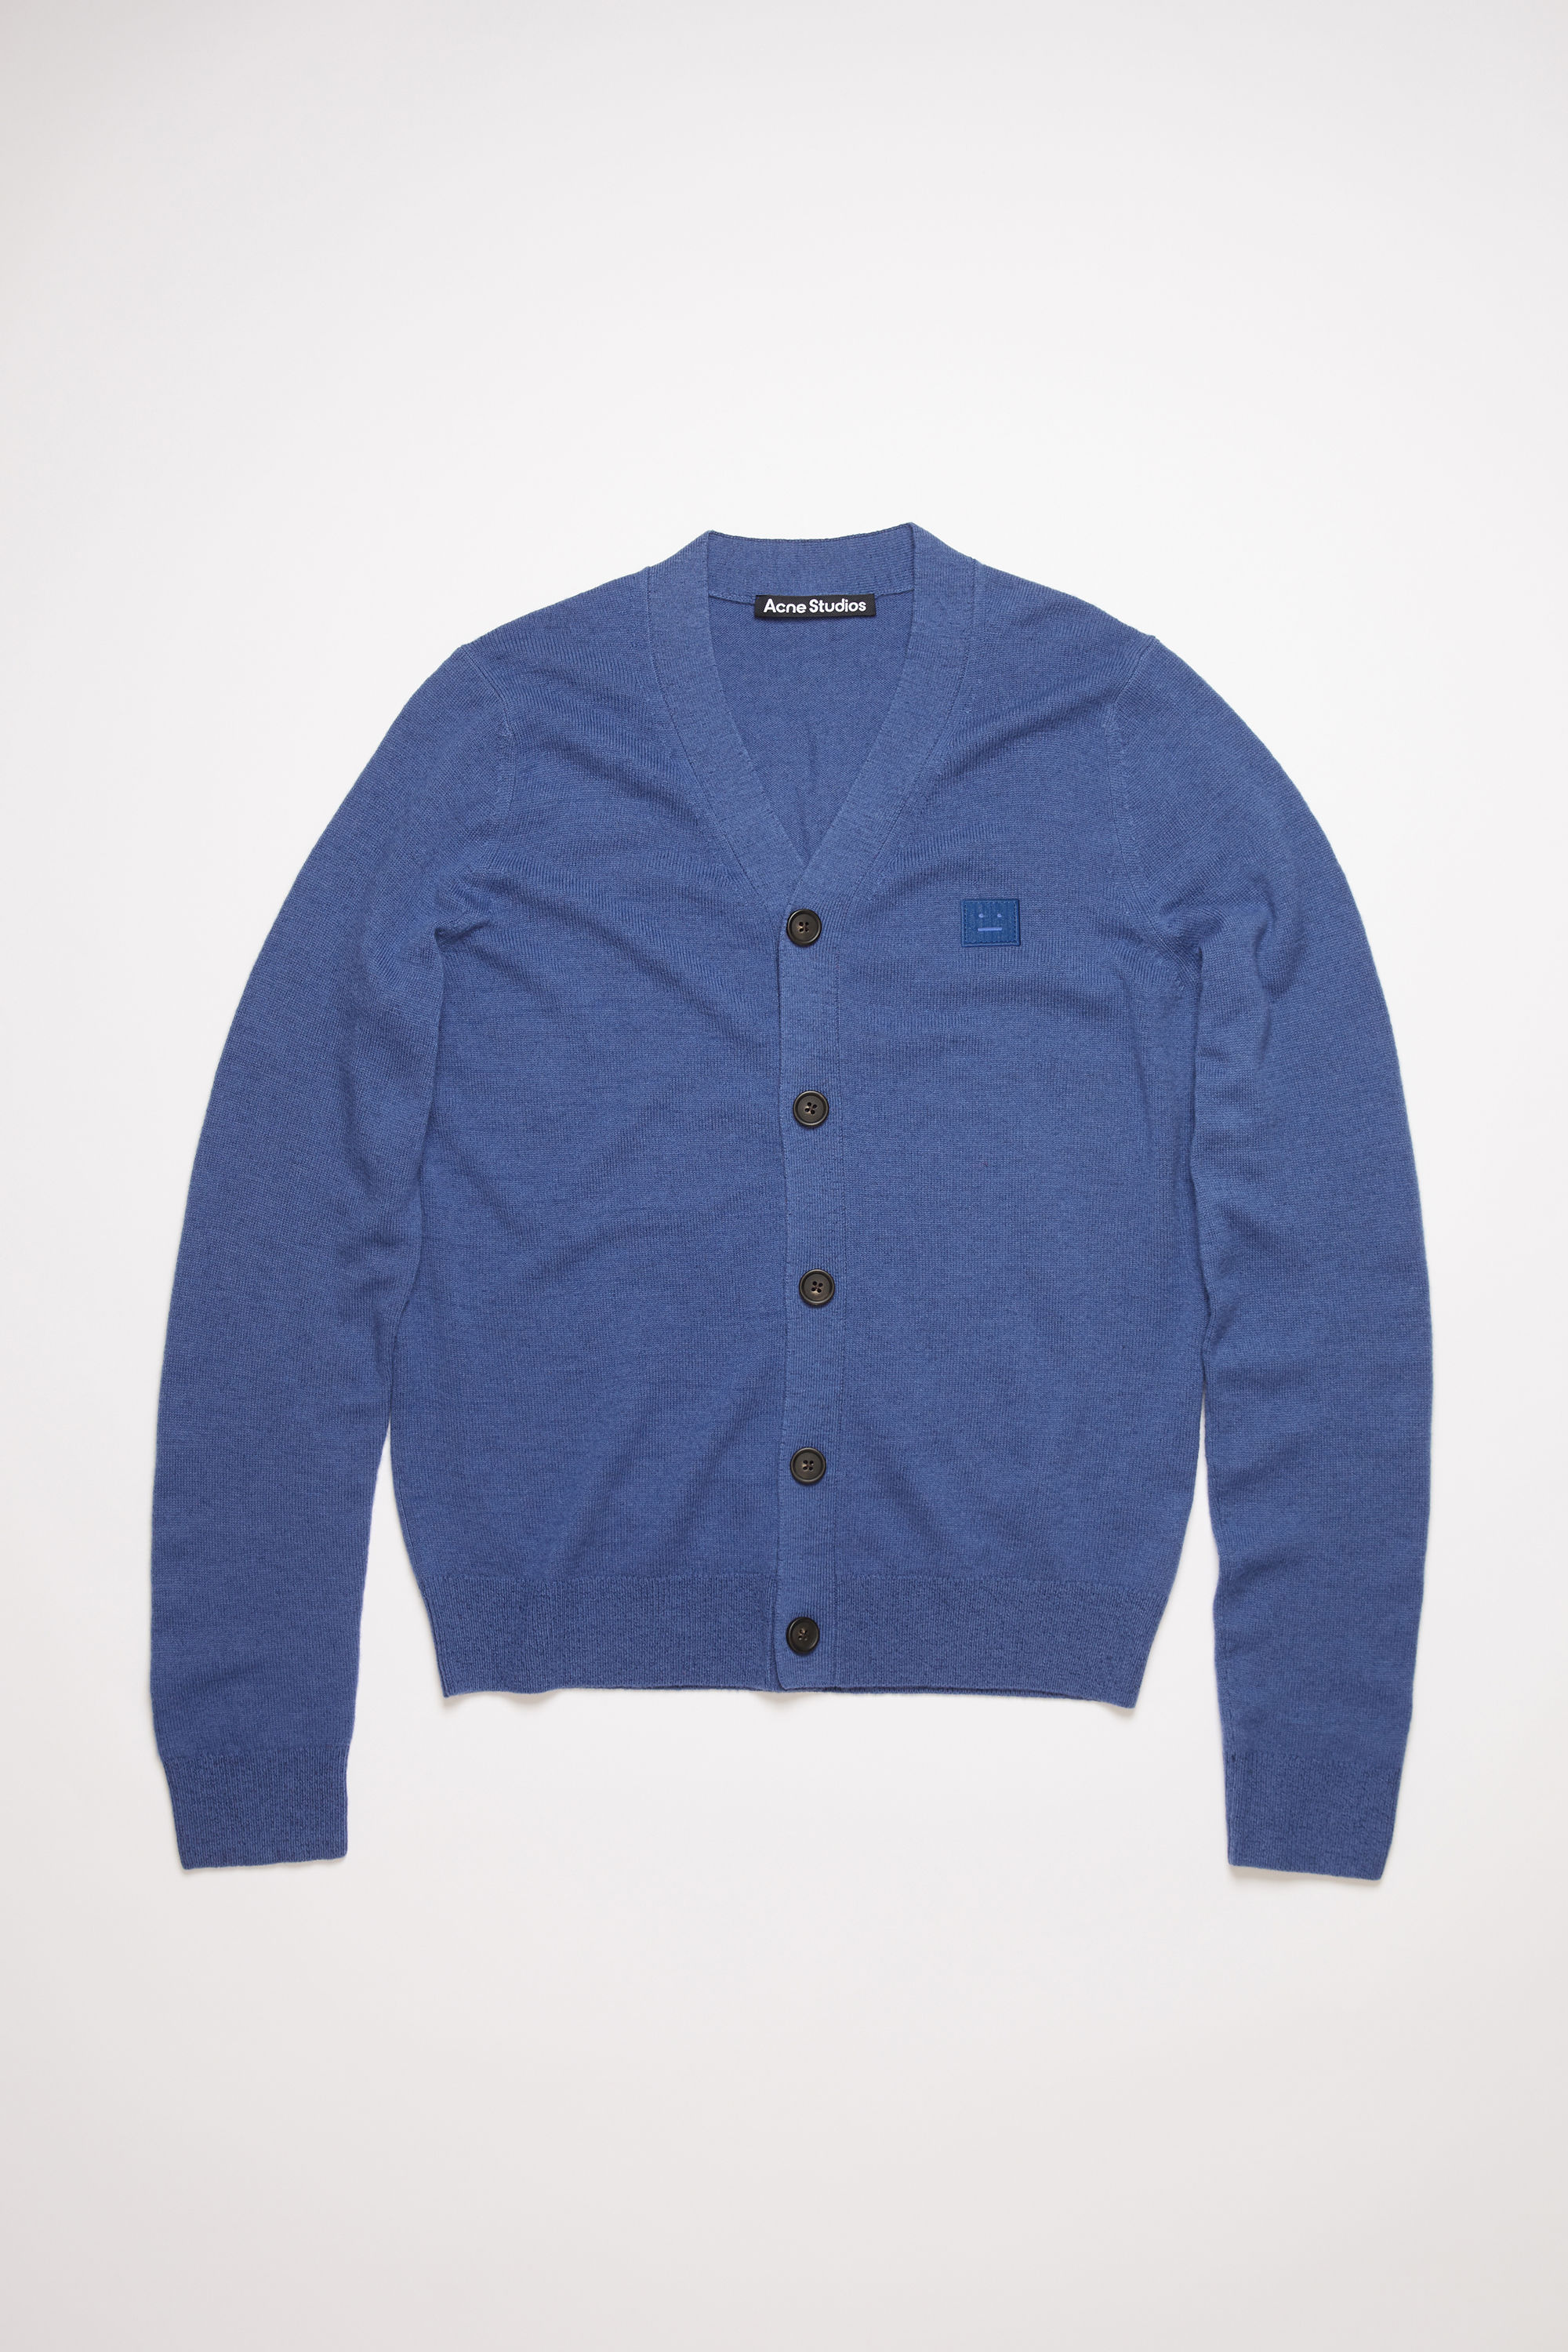 Acne Studios dusty blue v-neck cardigan sweater is made from wool with a face logo patch and ribbed details. 003